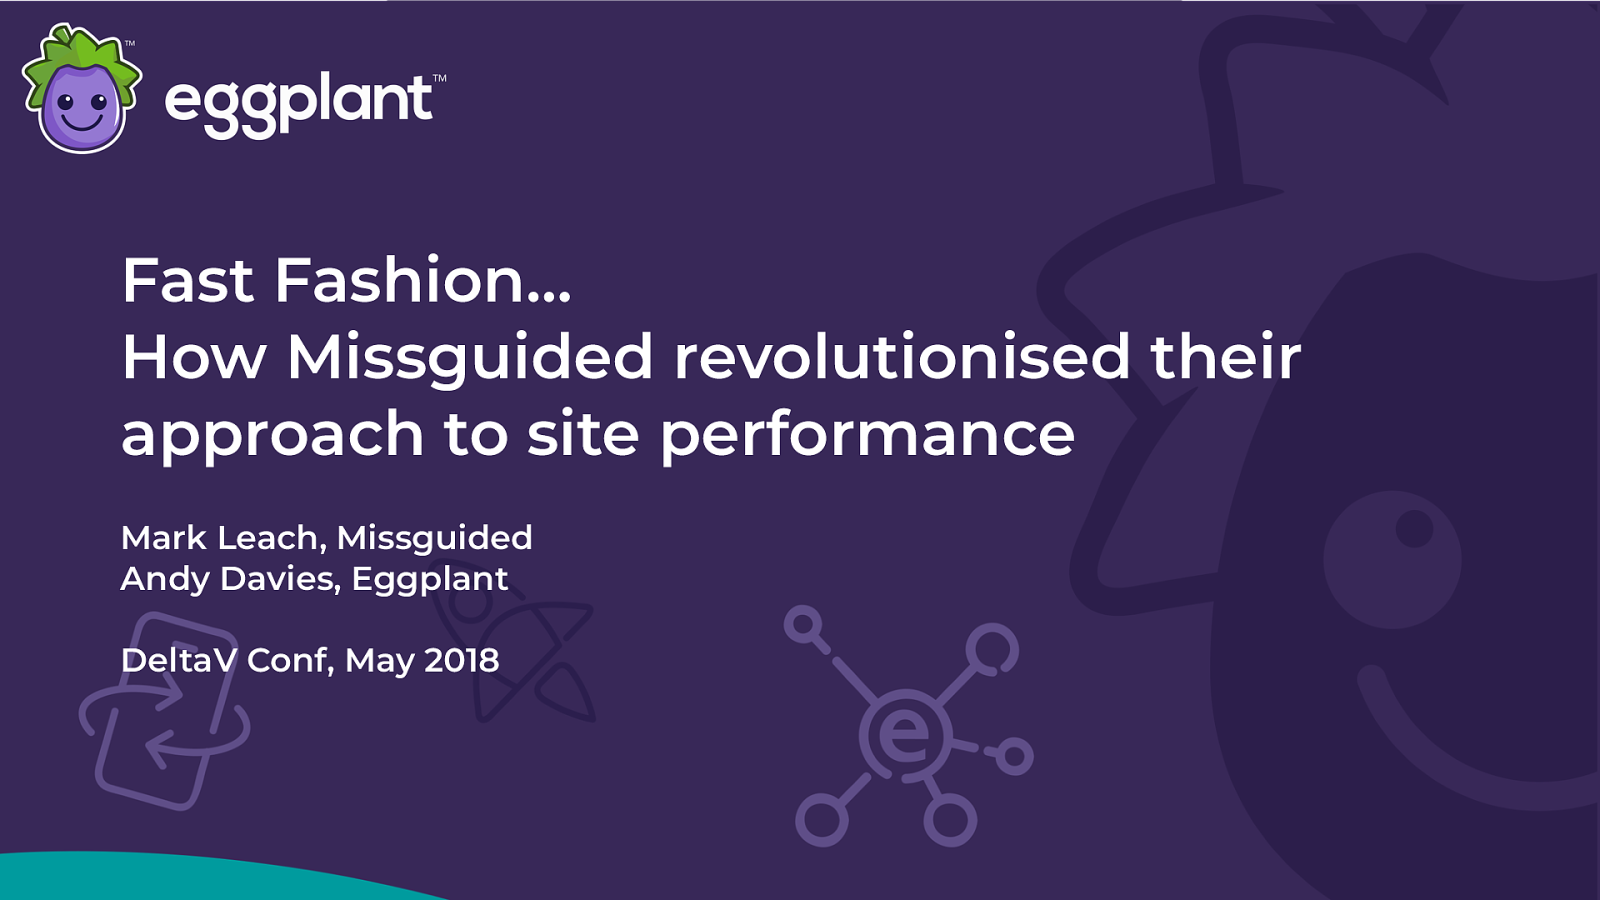 Fast Fashion… How Missguided revolutionised their approach to site performance